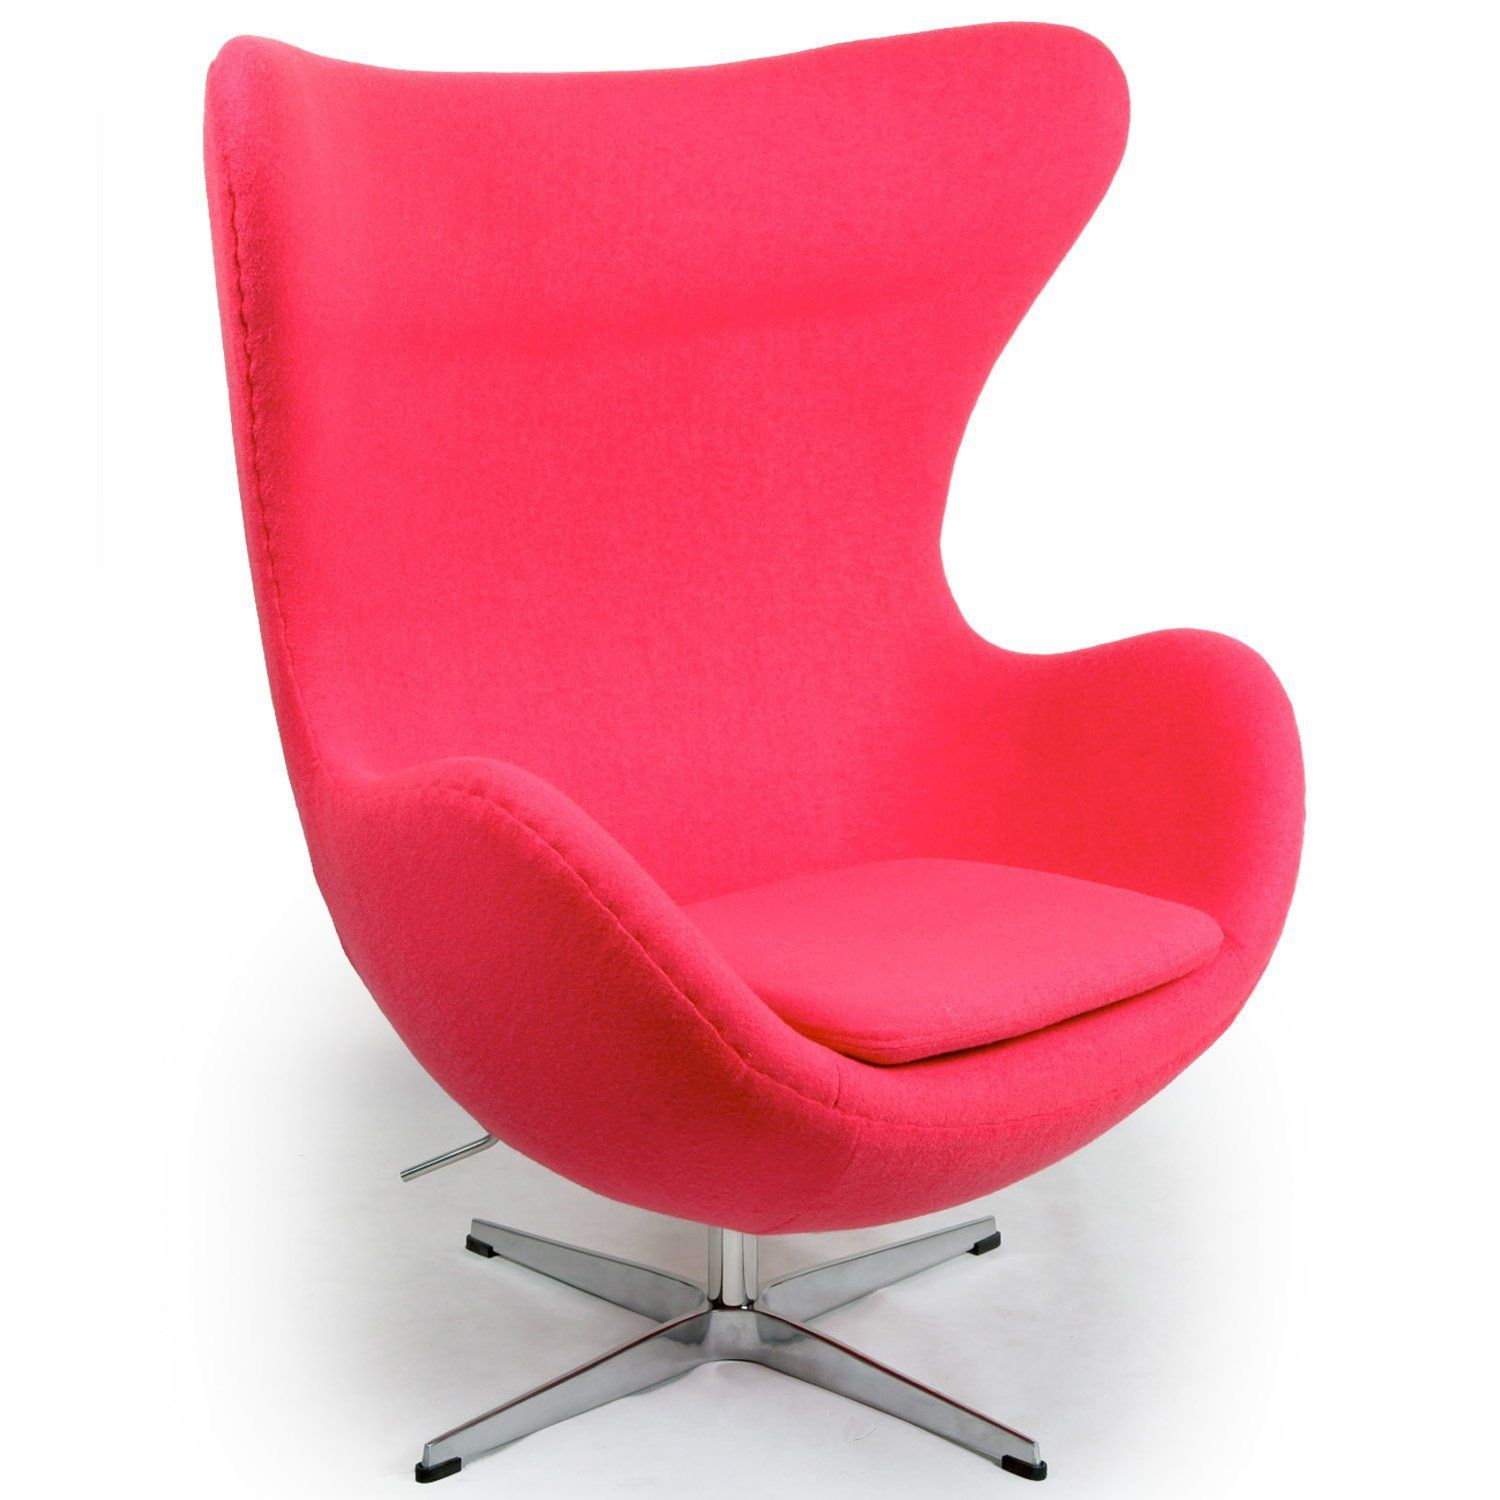 Funky Chairs for Teens  Funky Pink Chairs for Teen Girls